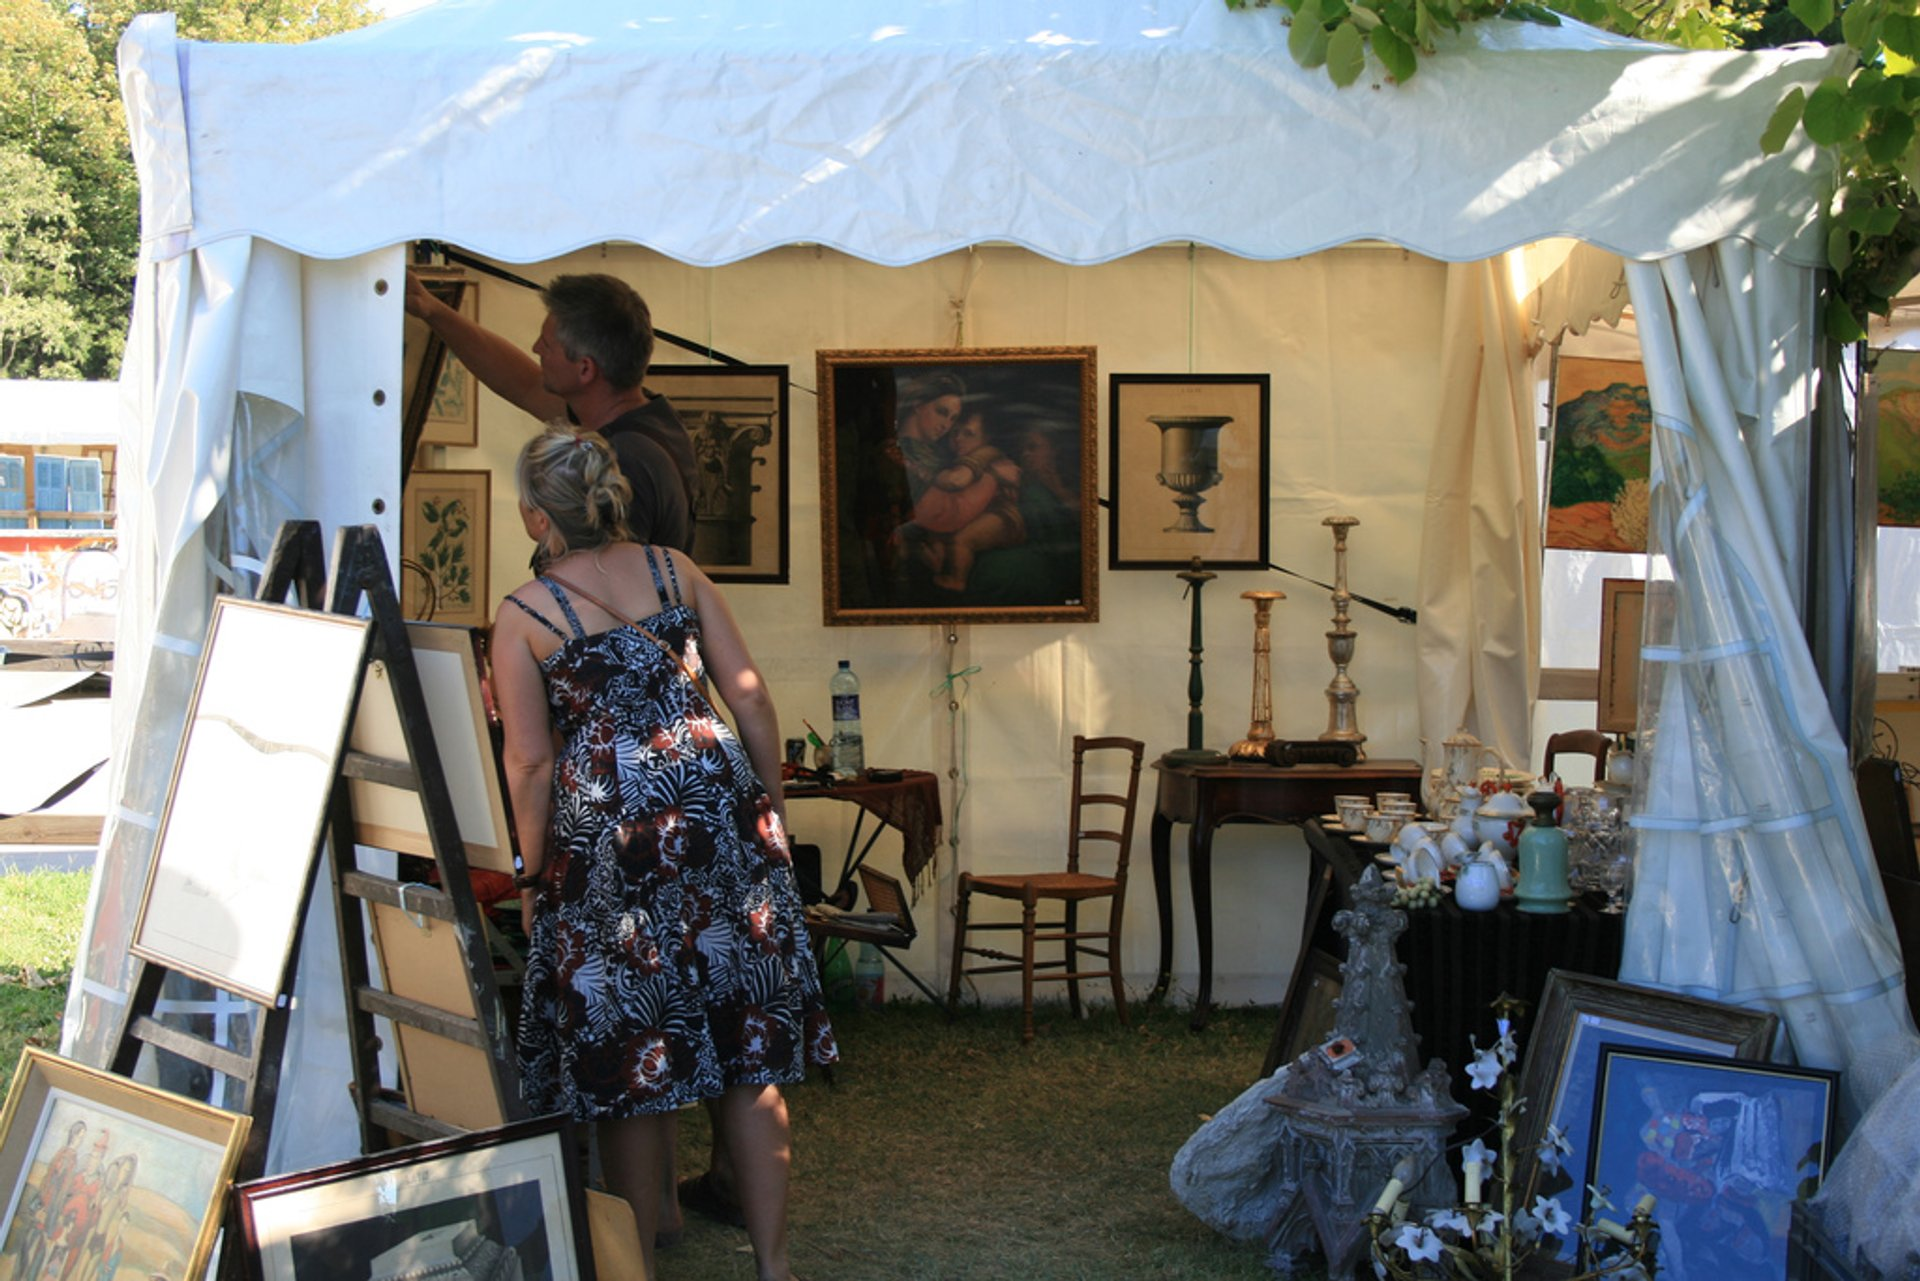 Foire Internationale Art et Antiquités in Provence & French Riviera 2020 - Best Time